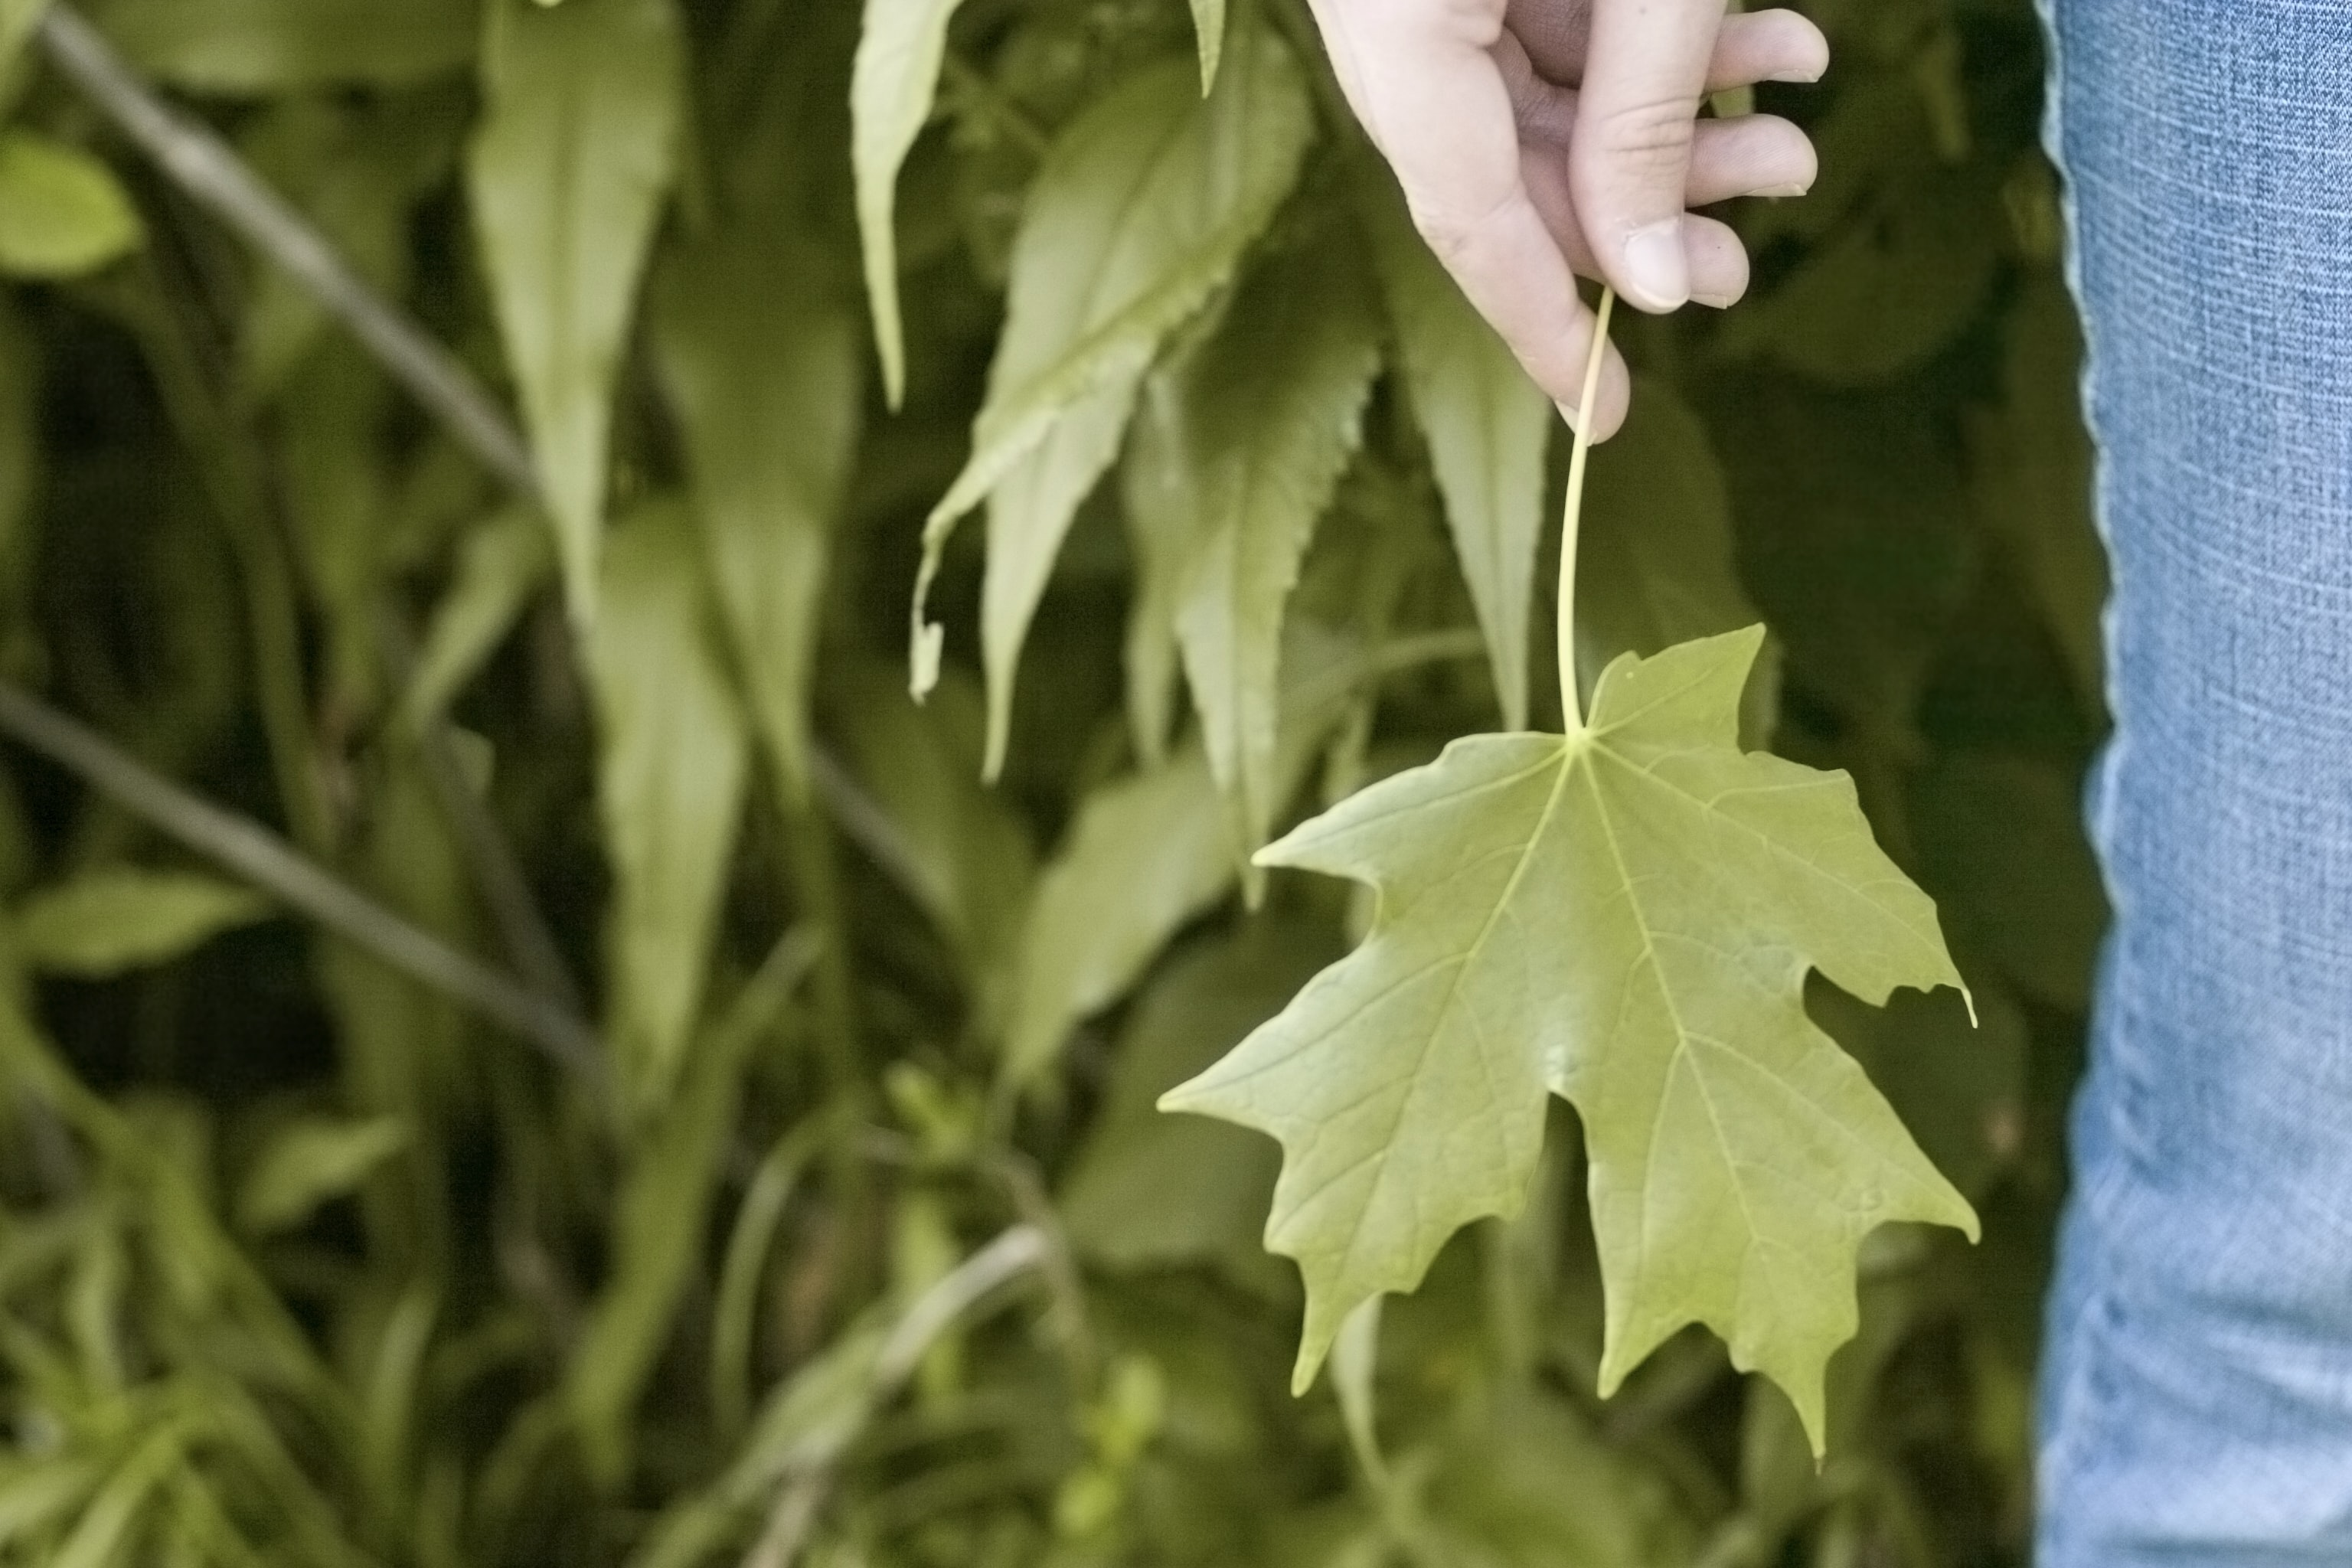 photo of person holding green leaves